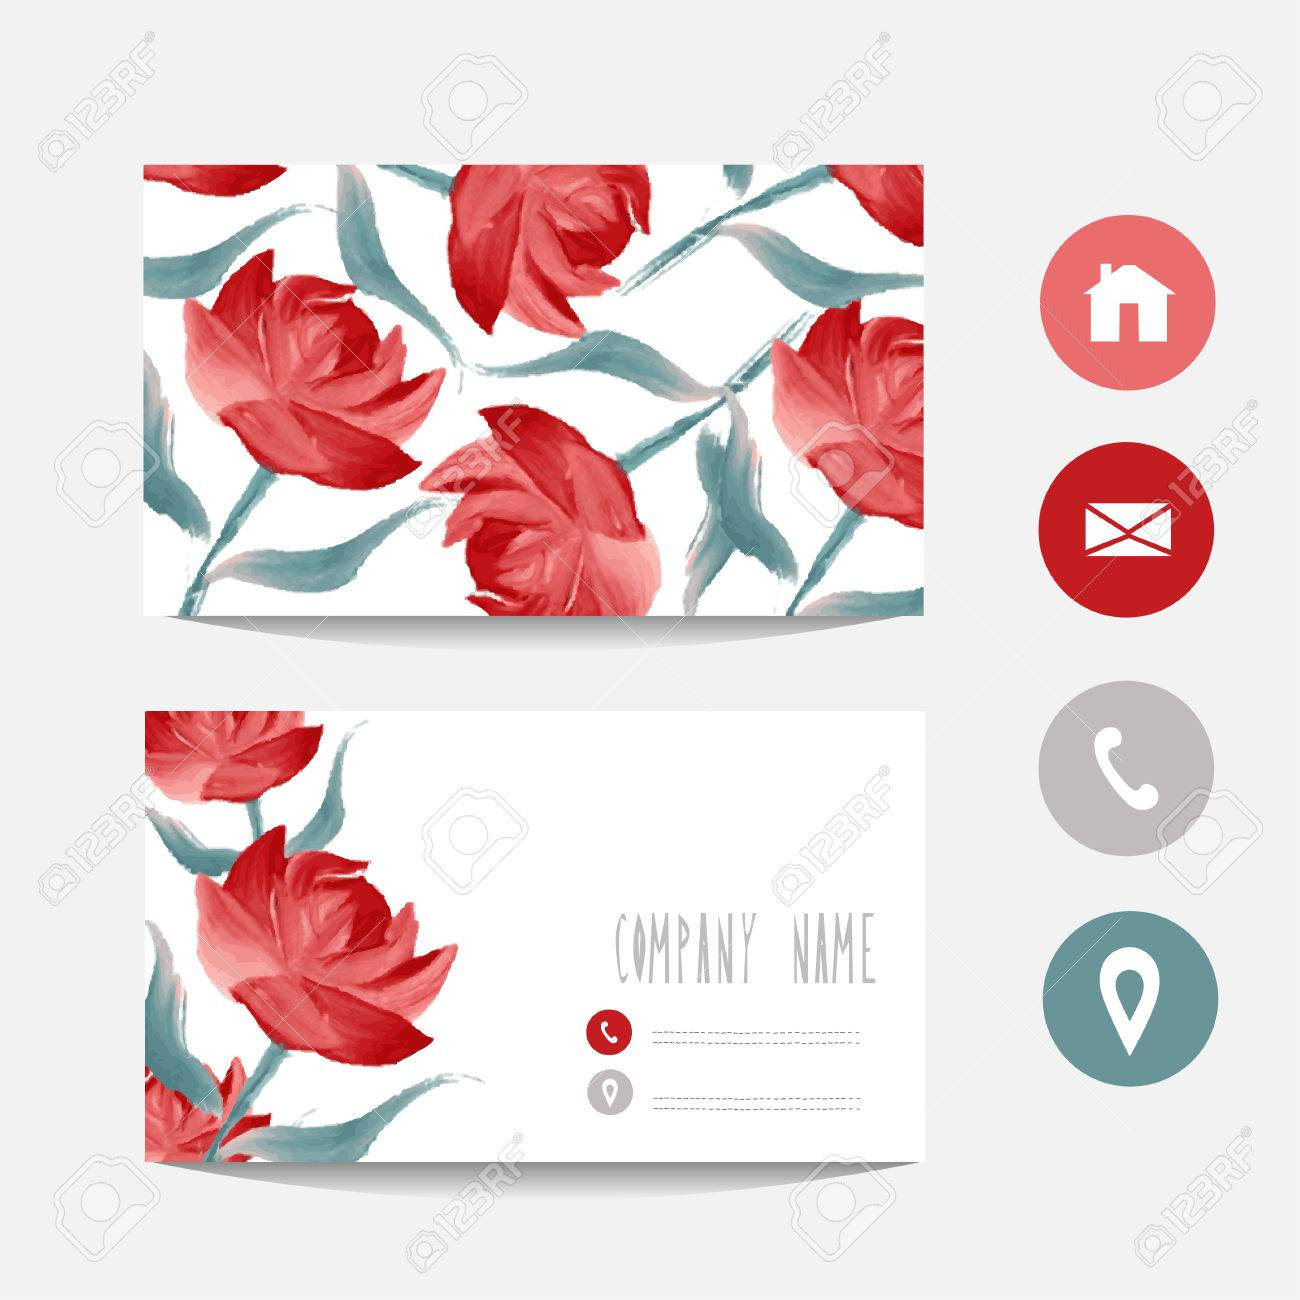 Oil painted business card template with red roses design element oil painted business card template with red roses design element can be used also reheart Image collections